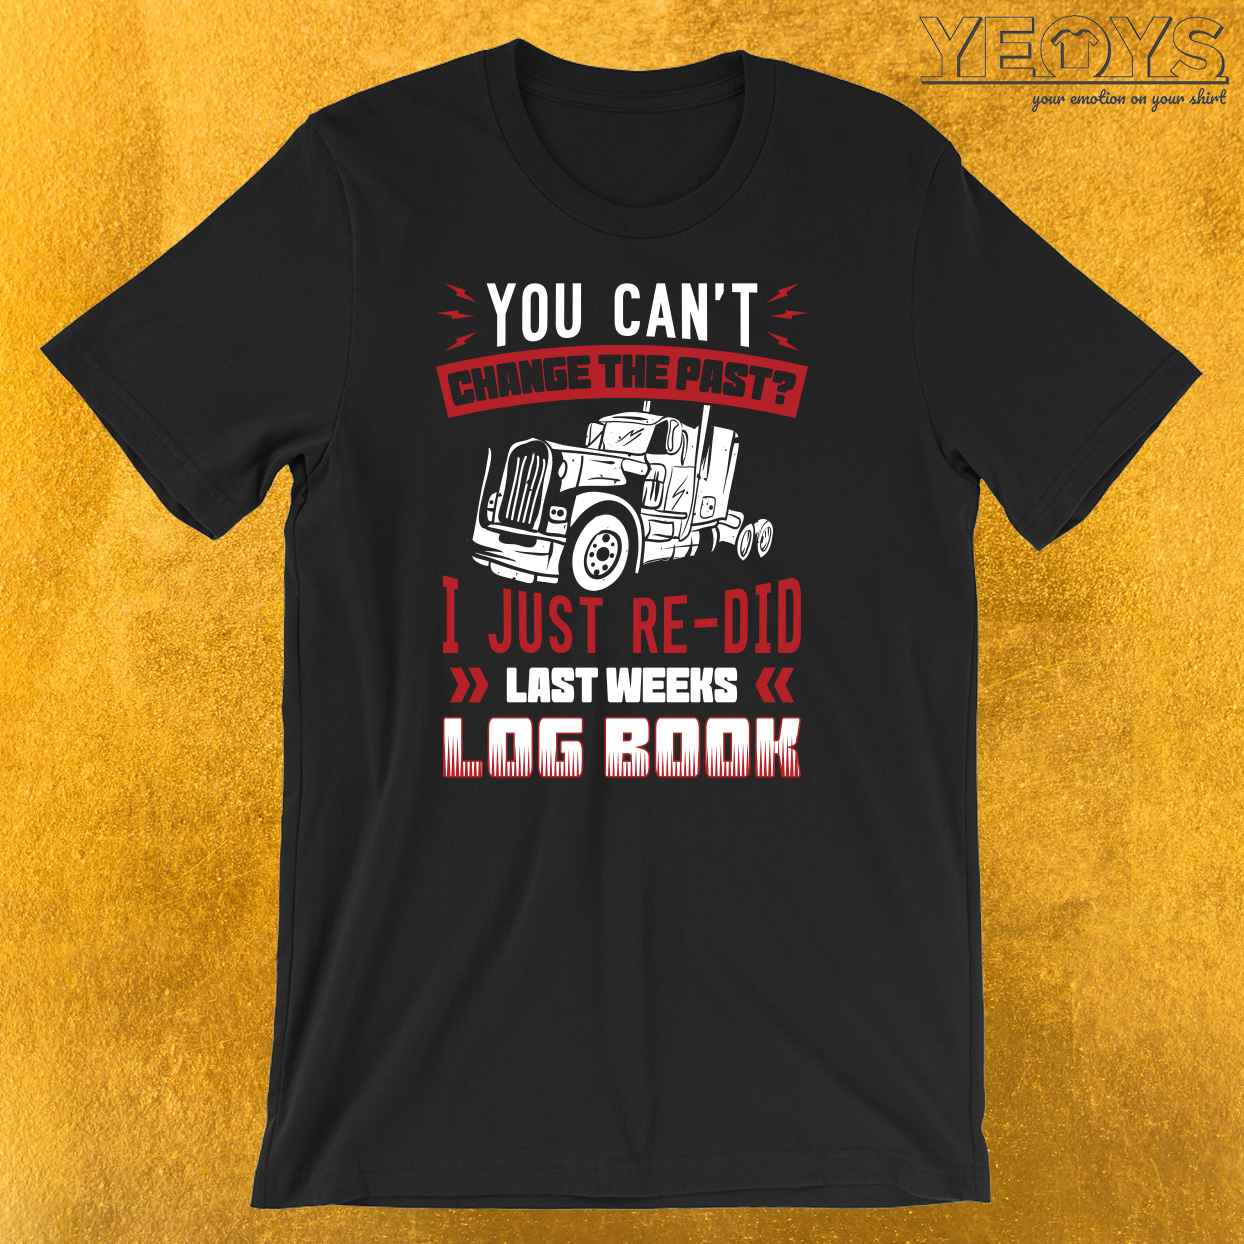 I Just Re-Did Last Weeks Log Book T-Shirt